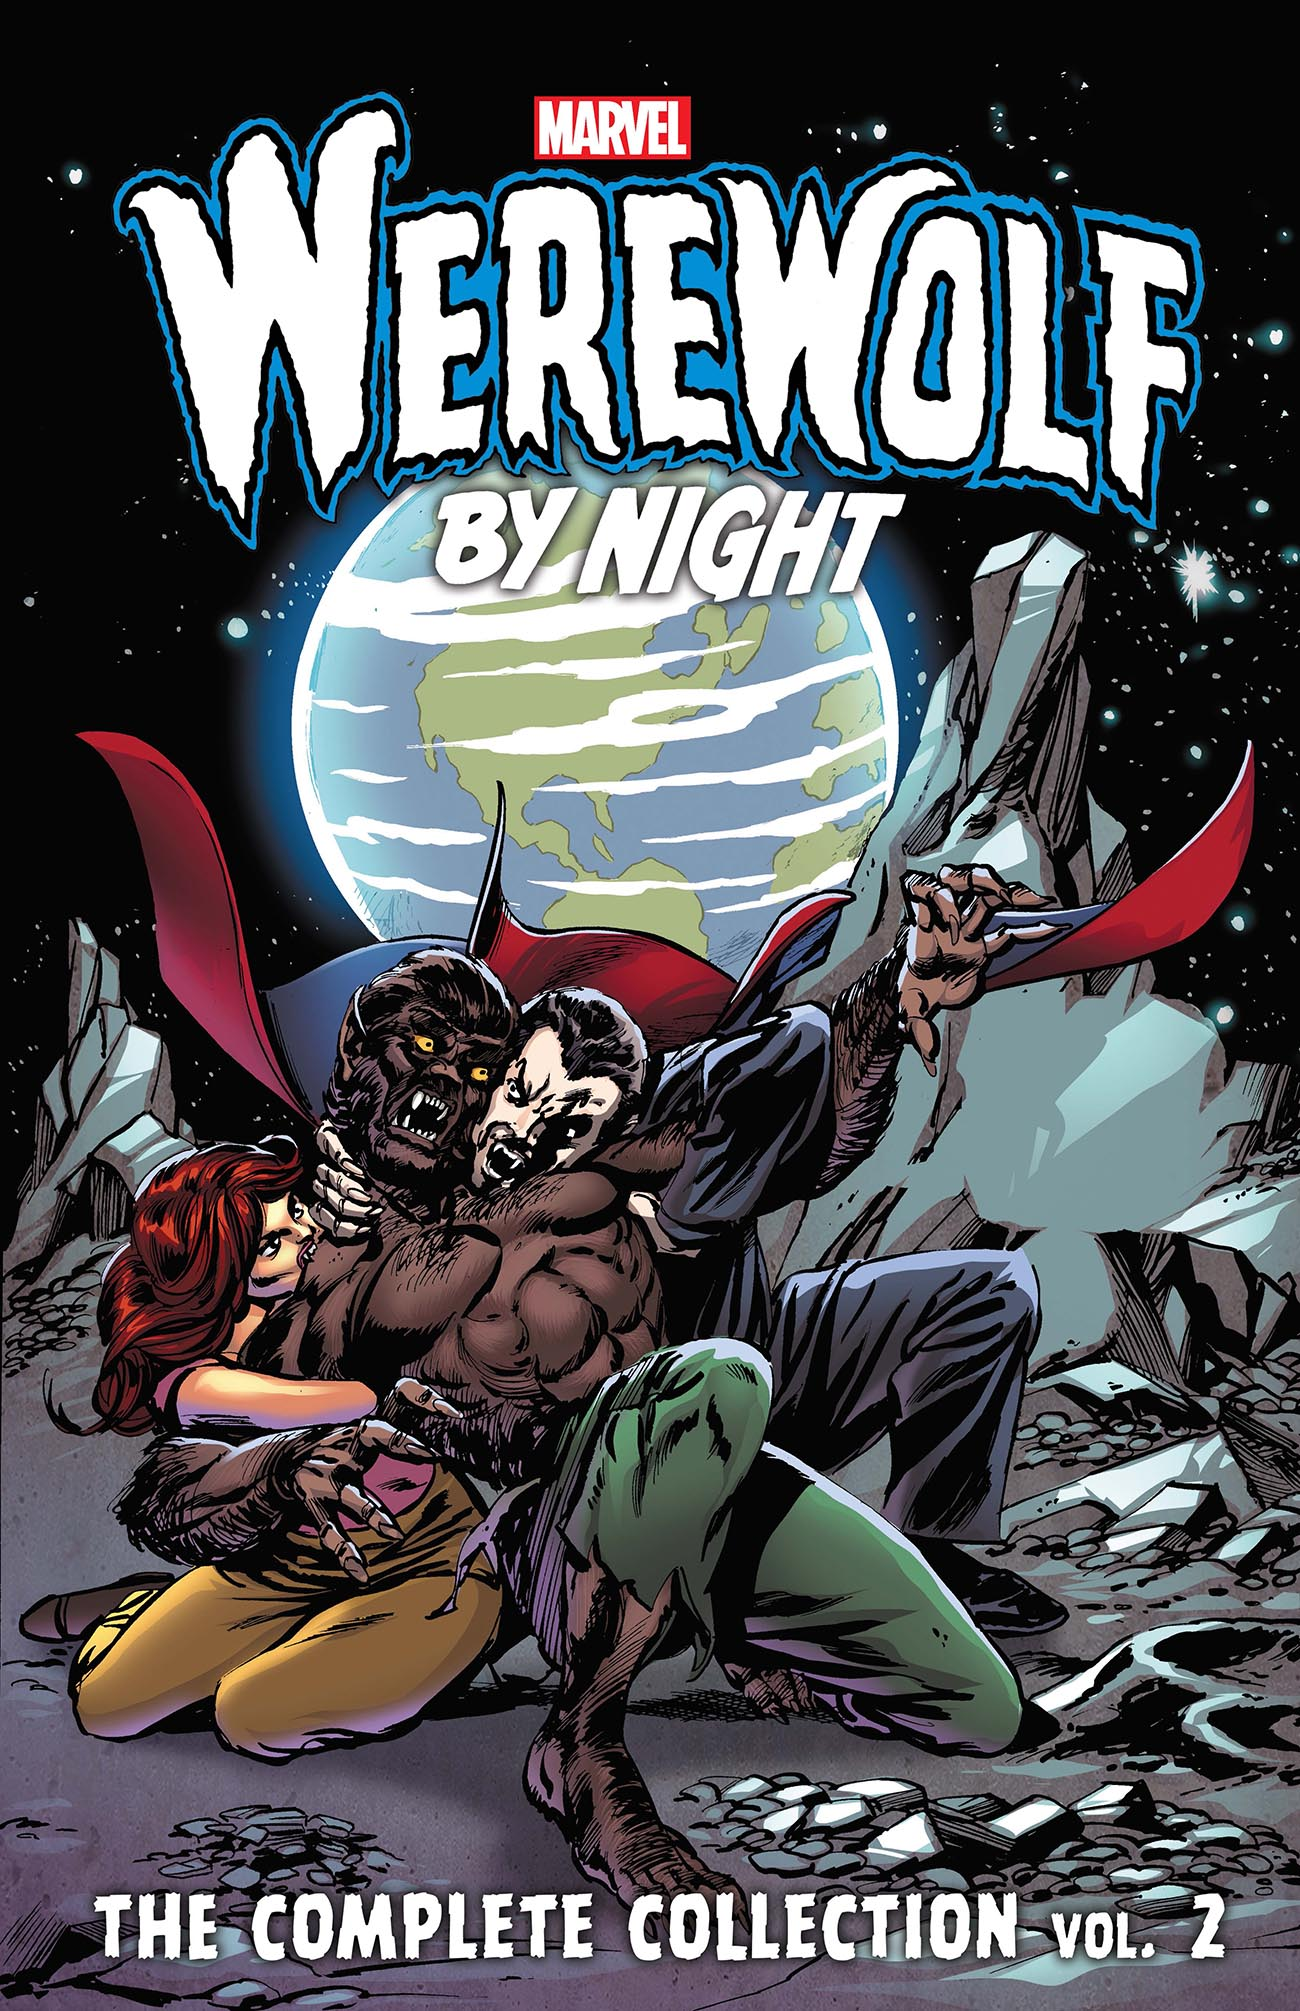 Werewolf by Night: The Complete Collection Vol. 2 (Trade Paperback)